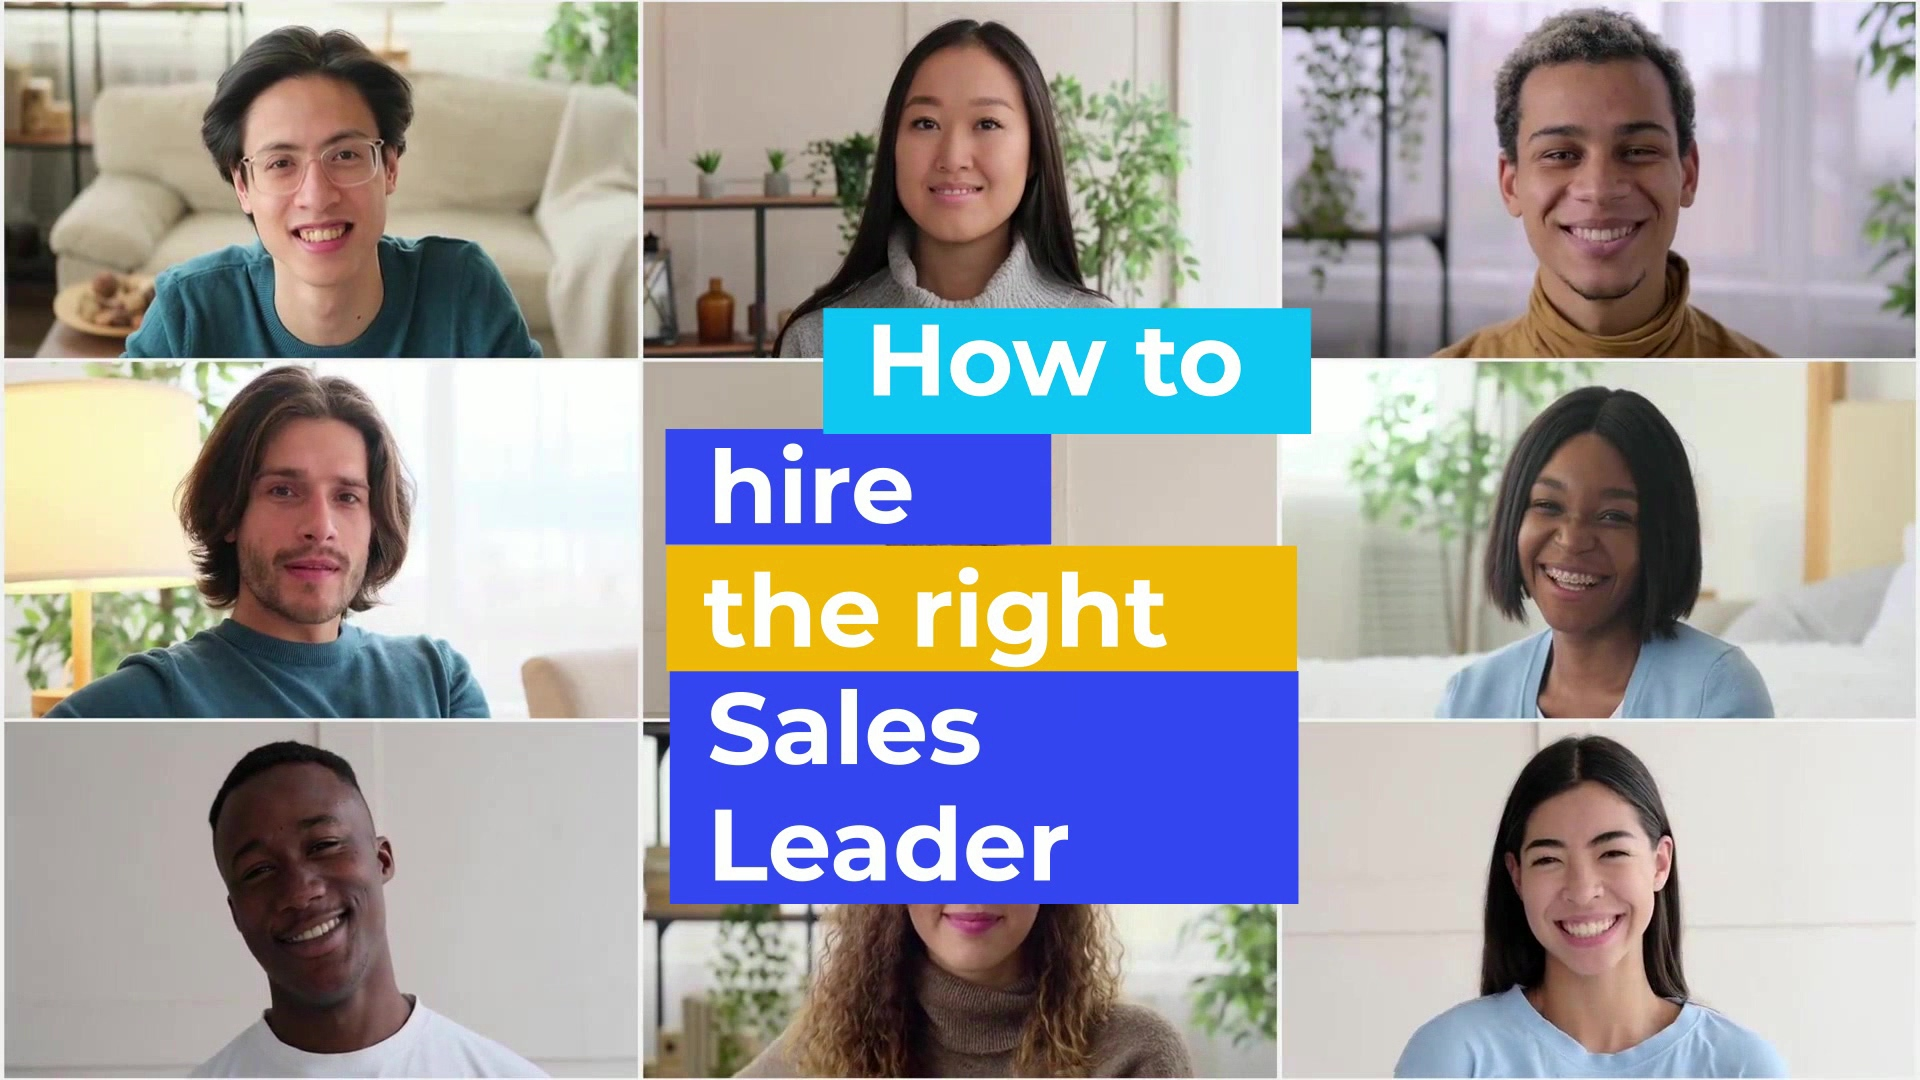 Quick Hiring Tips to Hire A Sales Leader